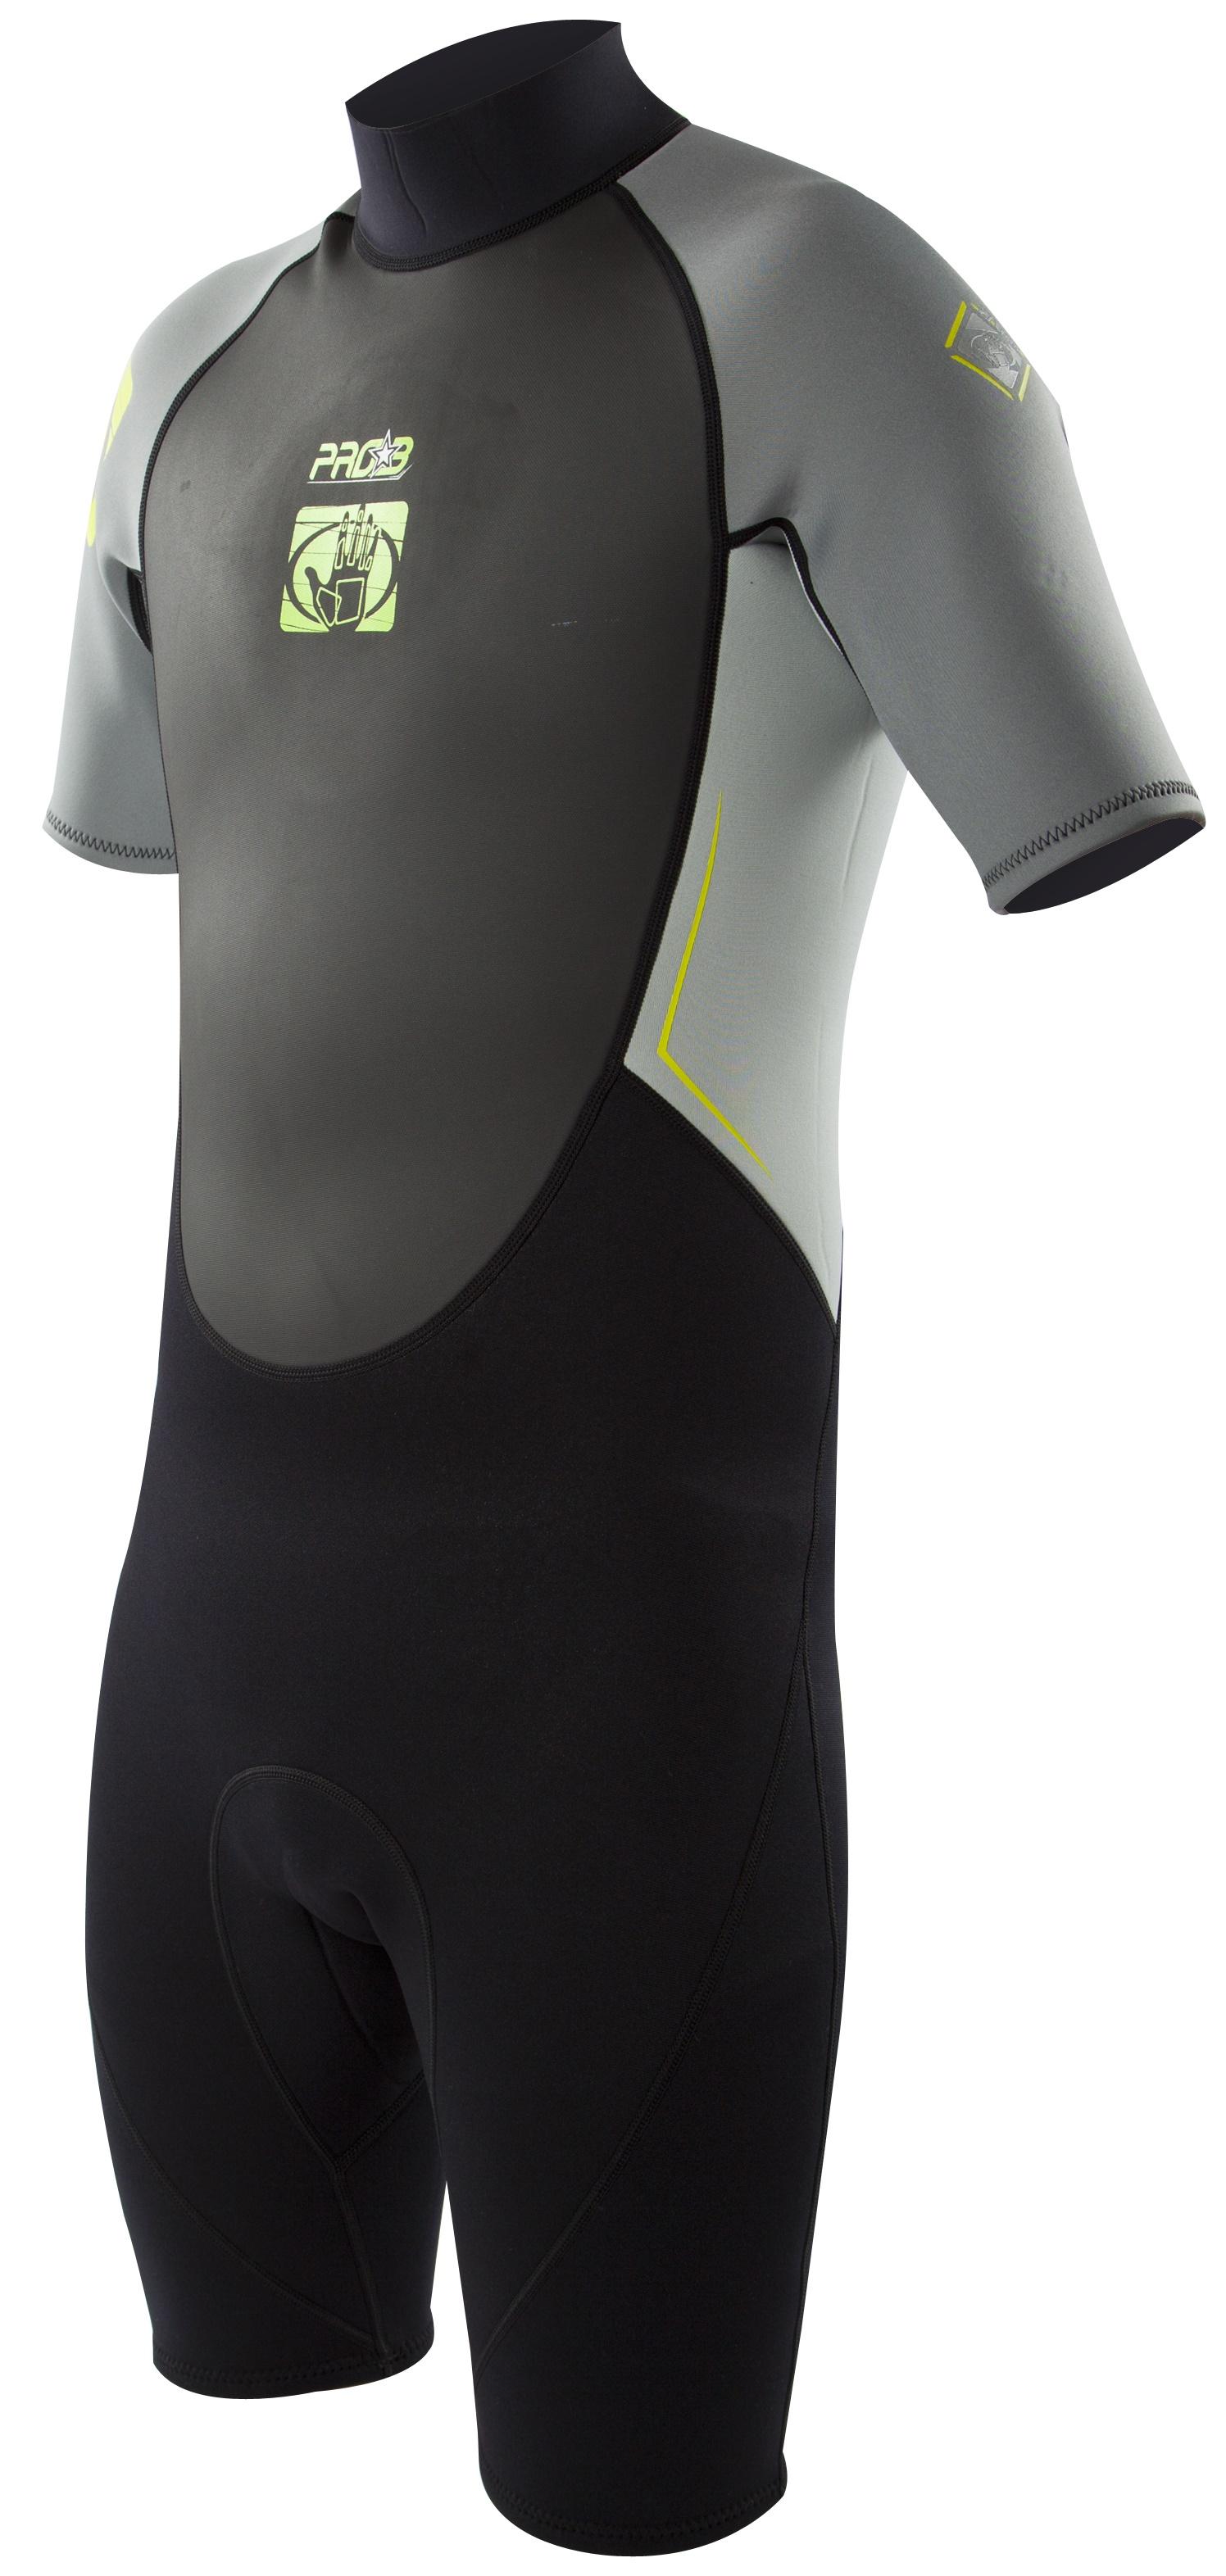 Body Glove Men's Pro3 2/1mm Springsuit Wetsuit - Black/Grey/Lime